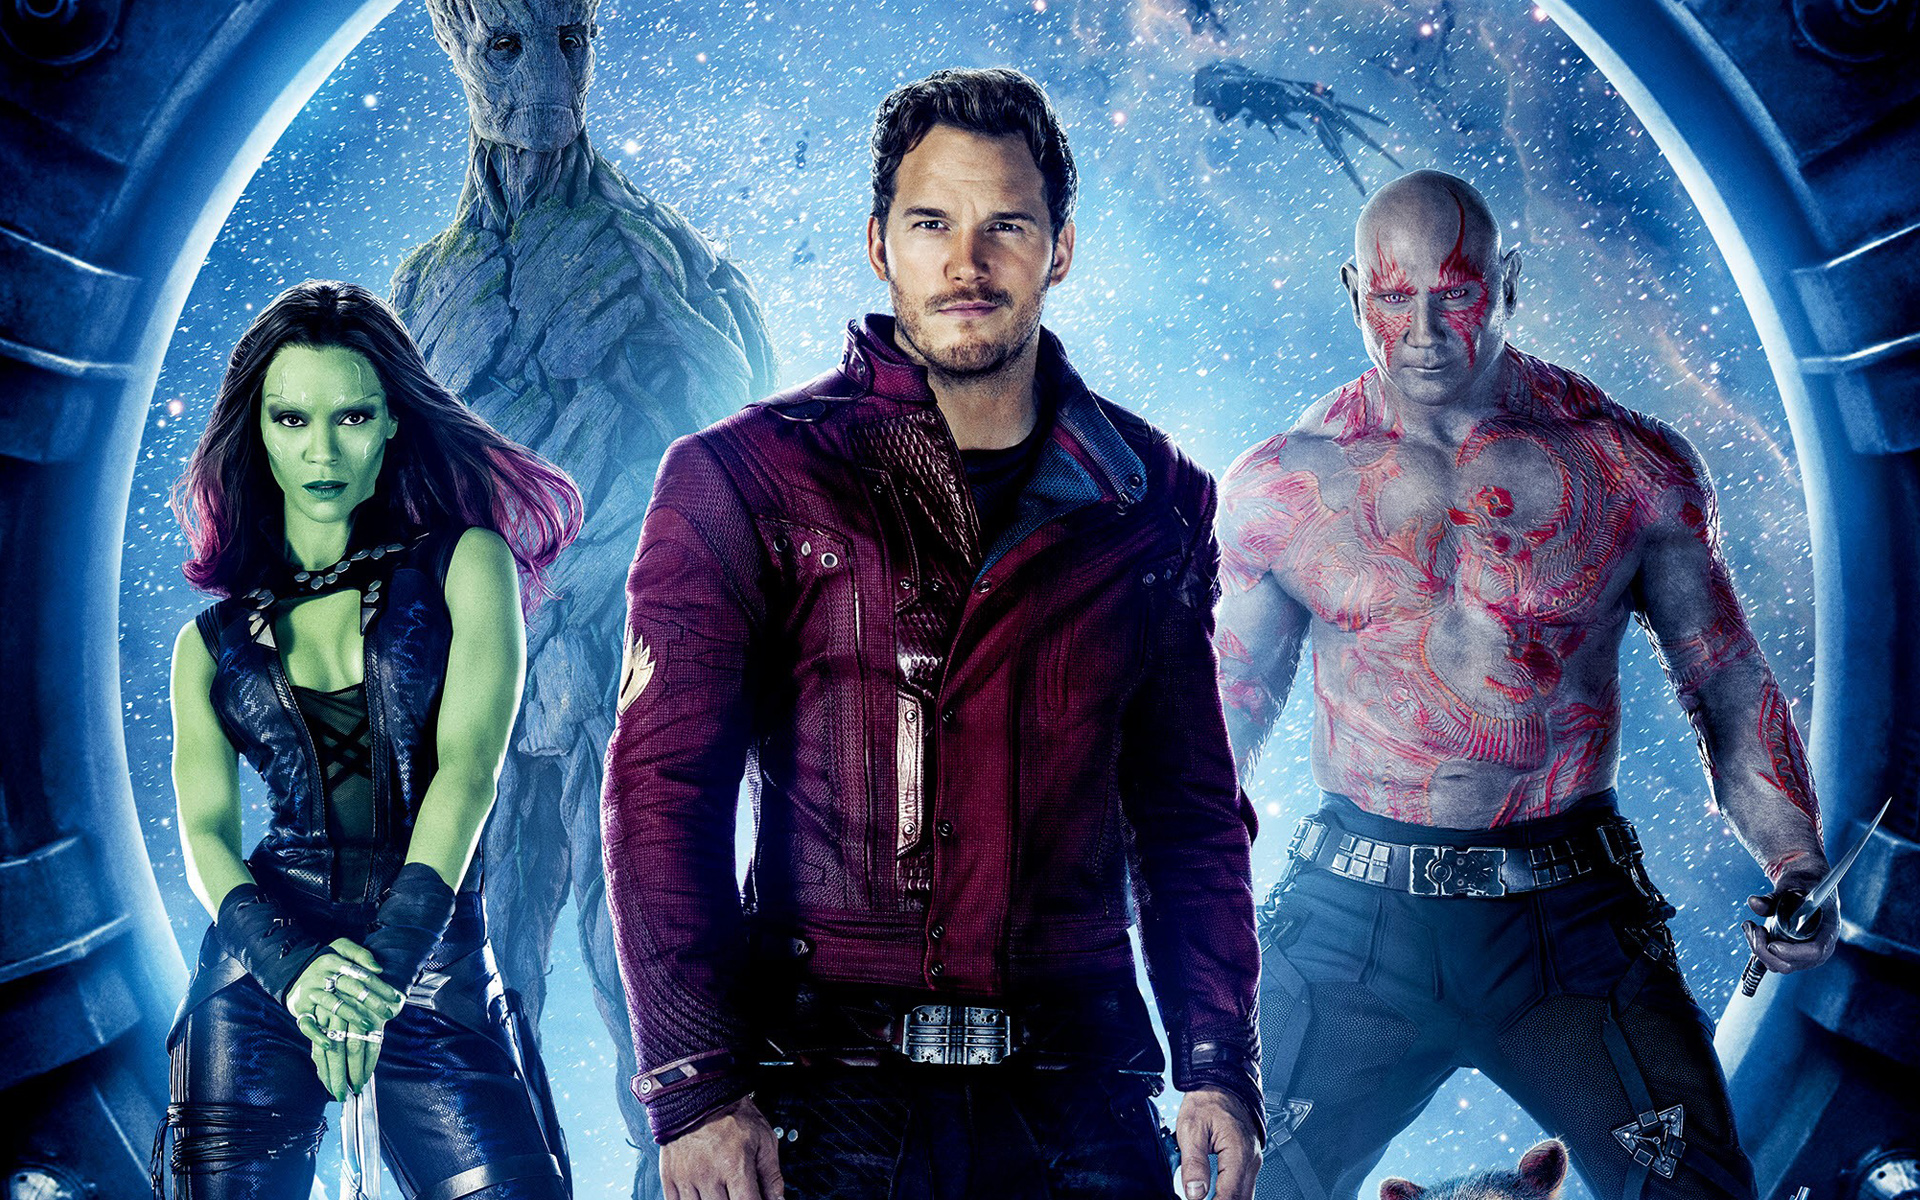 Great Wallpaper Movie Guardians The Galaxy - guardians_of_the_galaxy_2014_movie-widescreen_wallpapers  Trends_296155.jpg